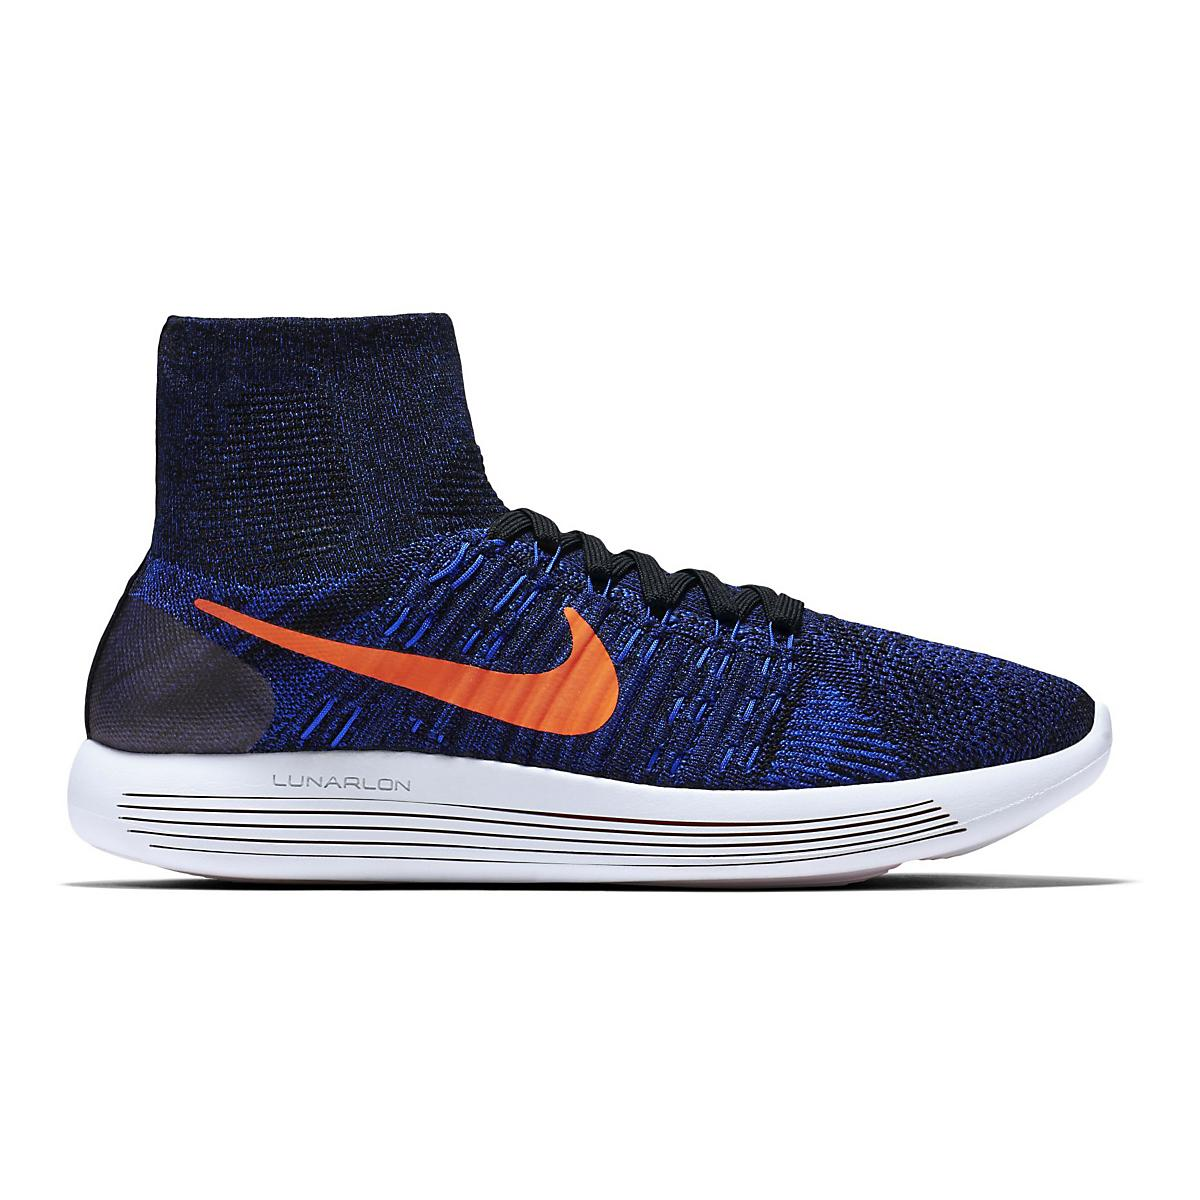 pretty nice 040b3 ca486 ... wholesale mens nike lunarepic flyknit running shoe at road runner  sports 8cf01 08cca